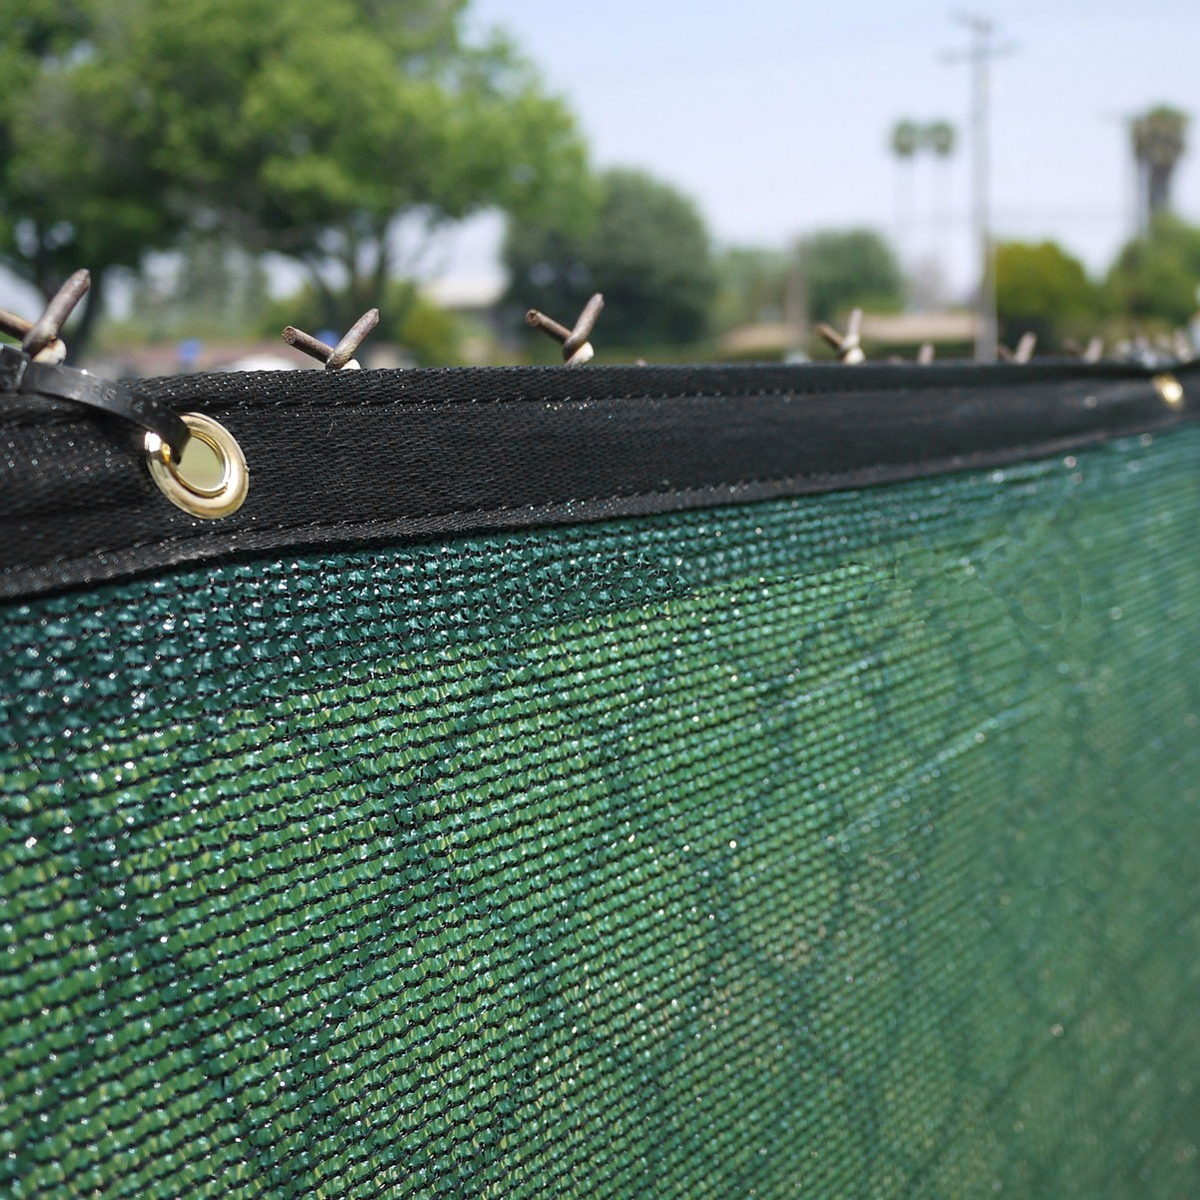 Clevr 6' x 50' Fence Wind Privacy Screen Mesh Commercial Cover with Grommets, Green | 3 Year Limited Warranty